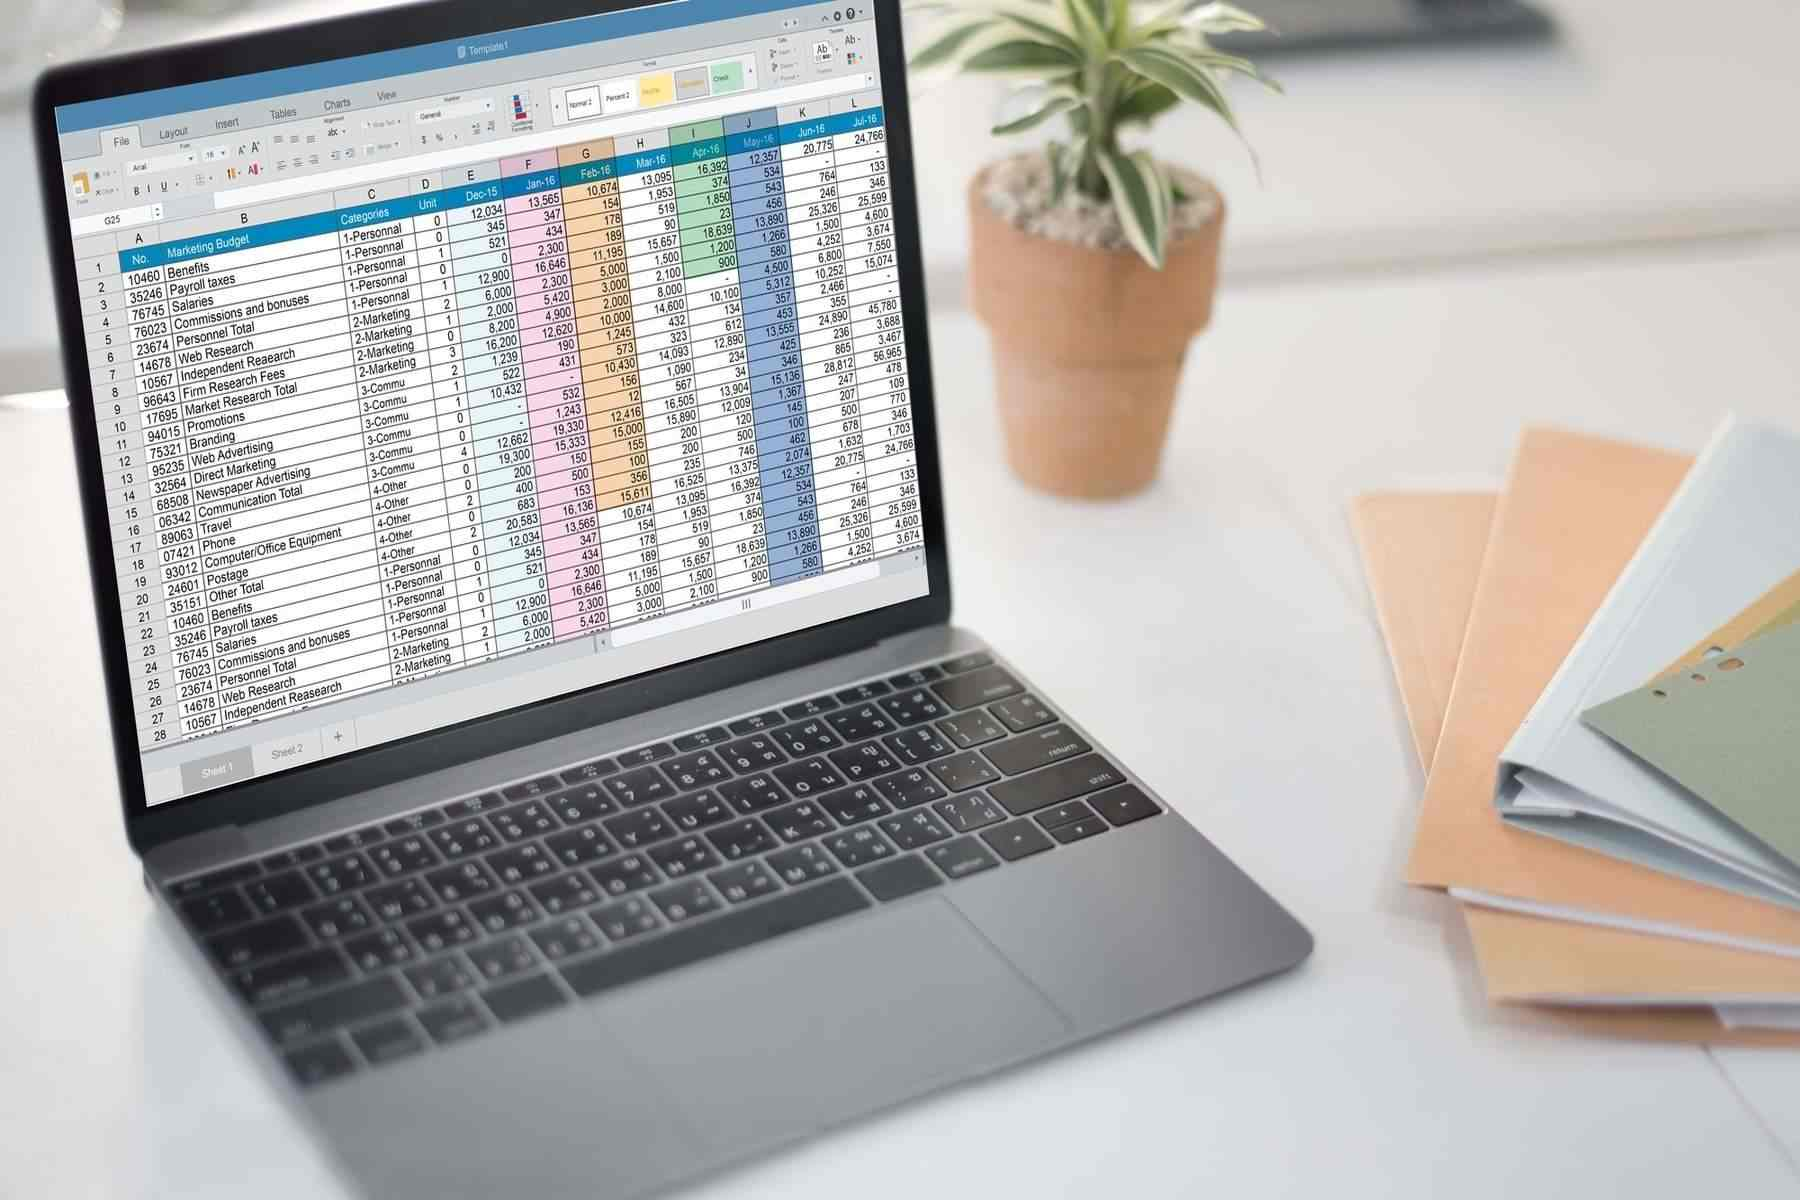 Excel XLSM vs XLSX: When to Use These File Types